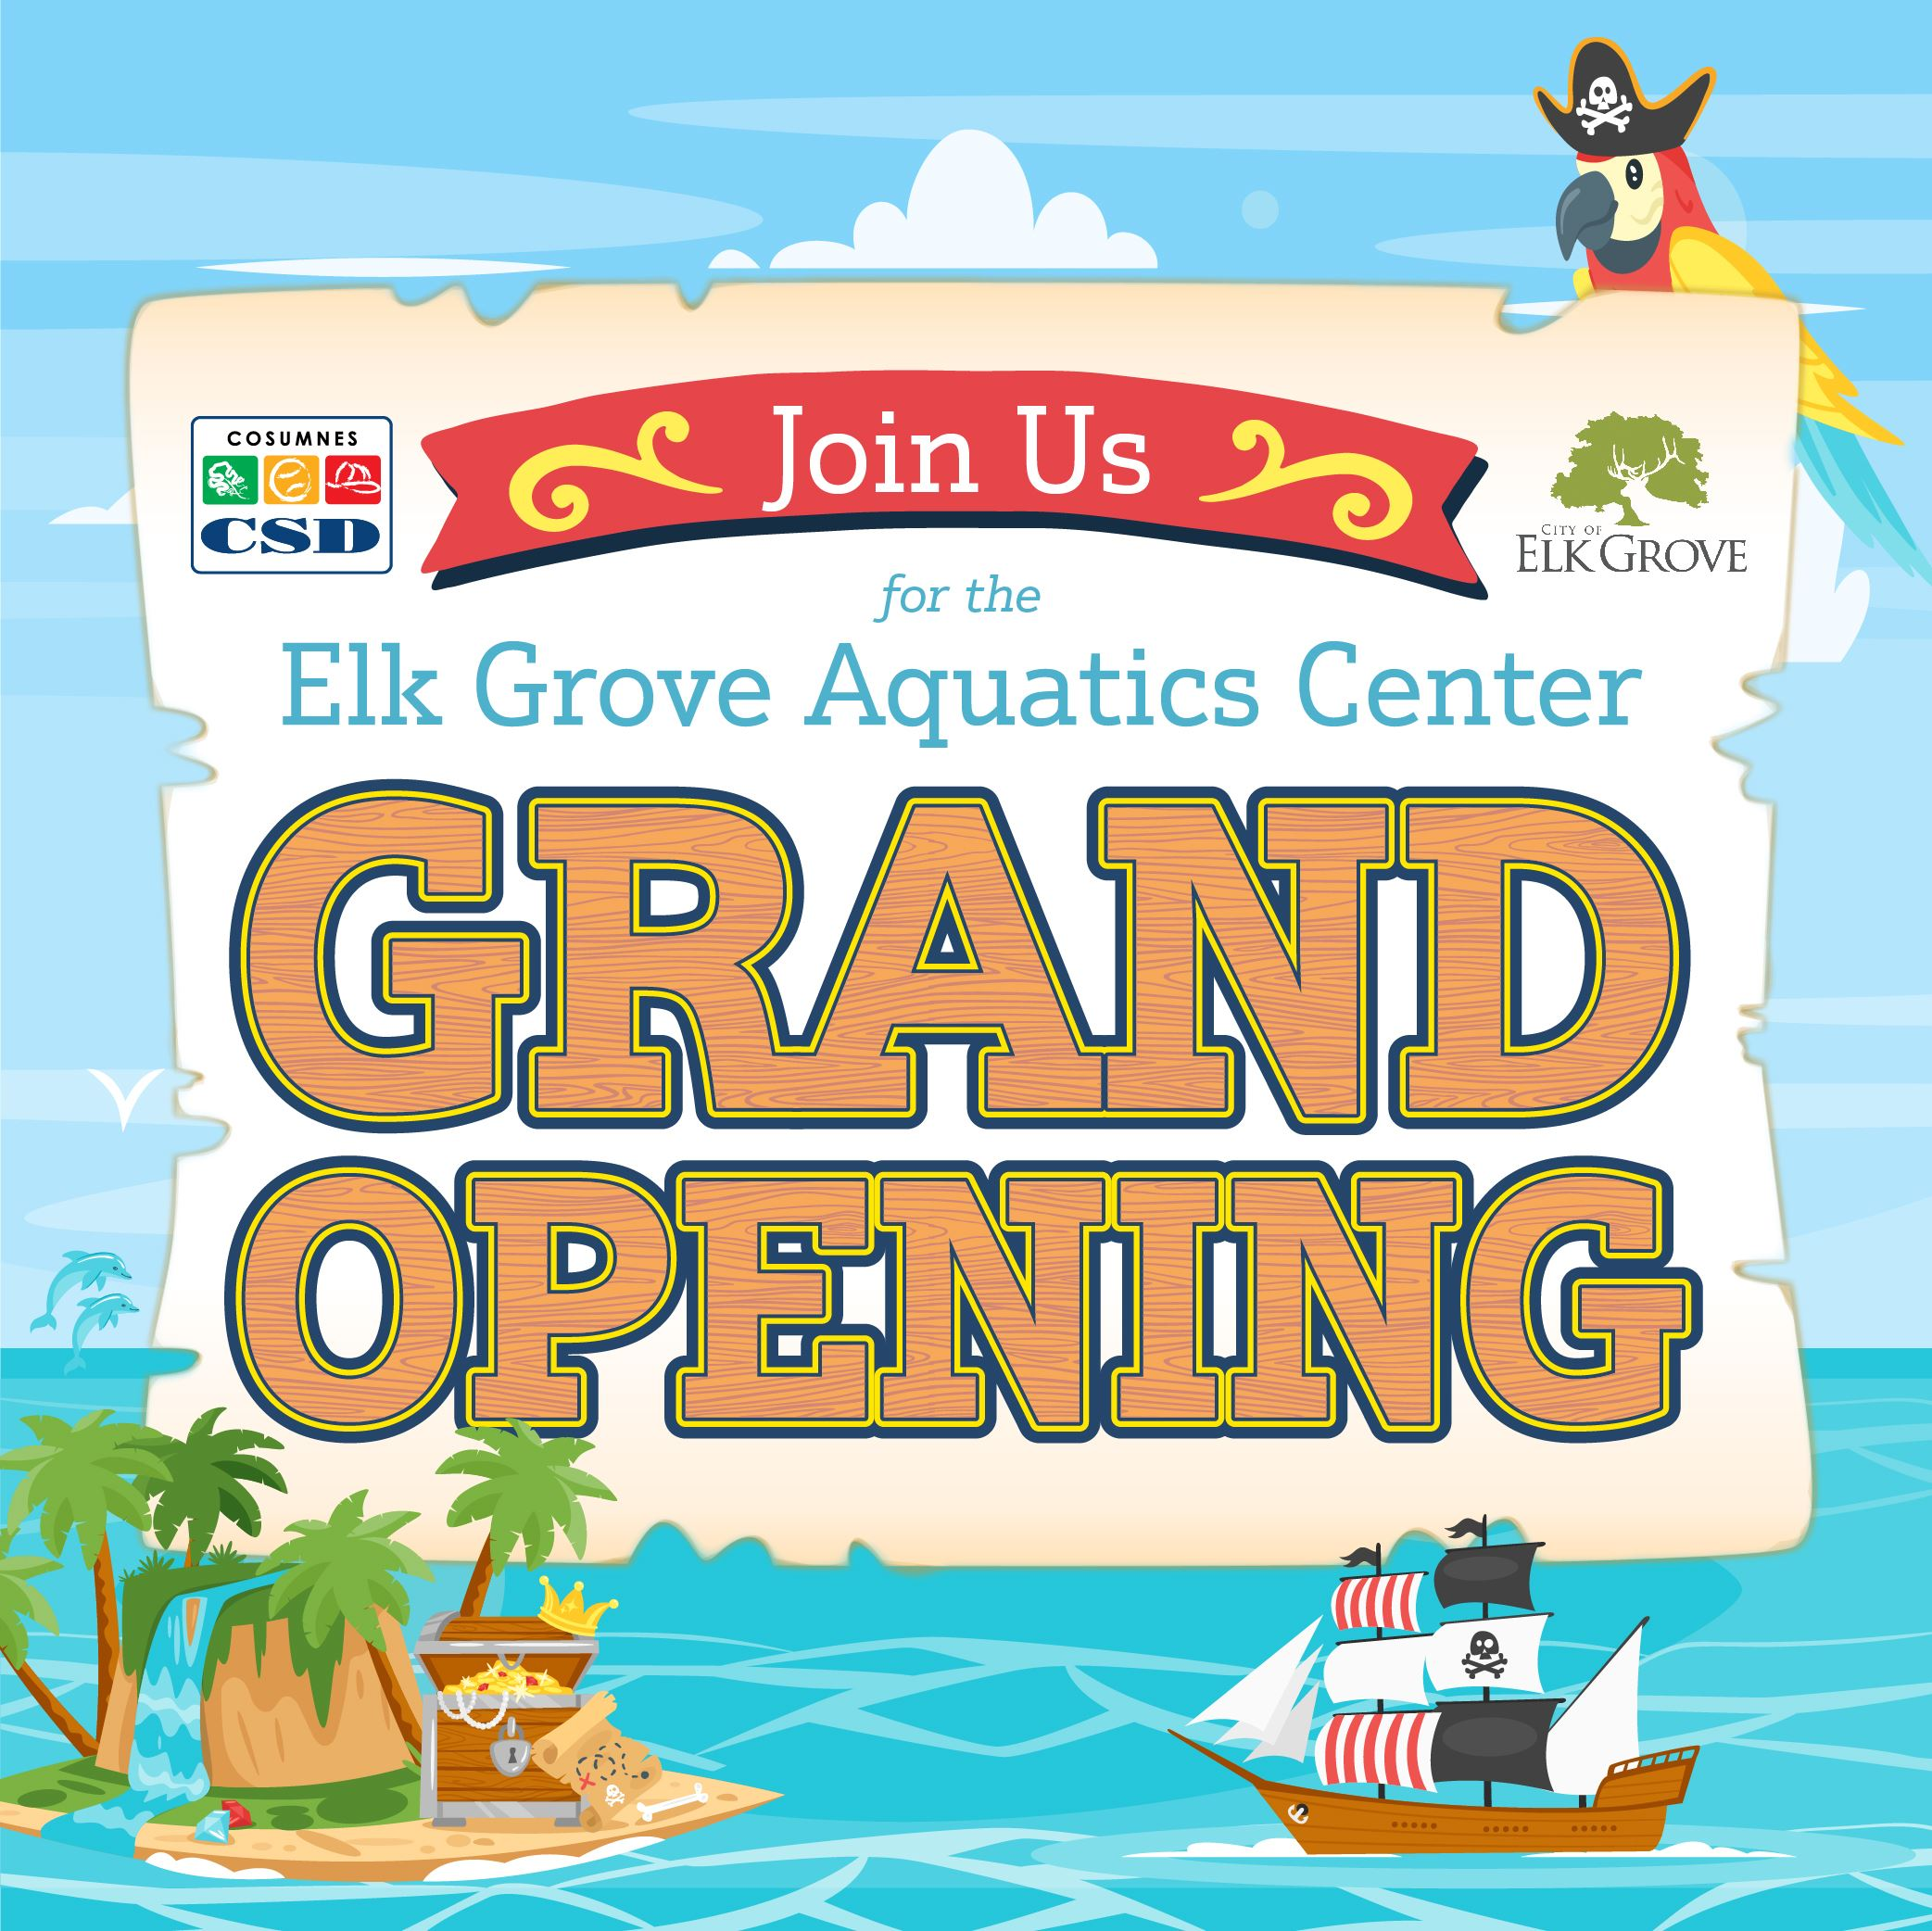 A vibrant pirate themed graphic for the Elk Grove Aquatics Center grand opening.